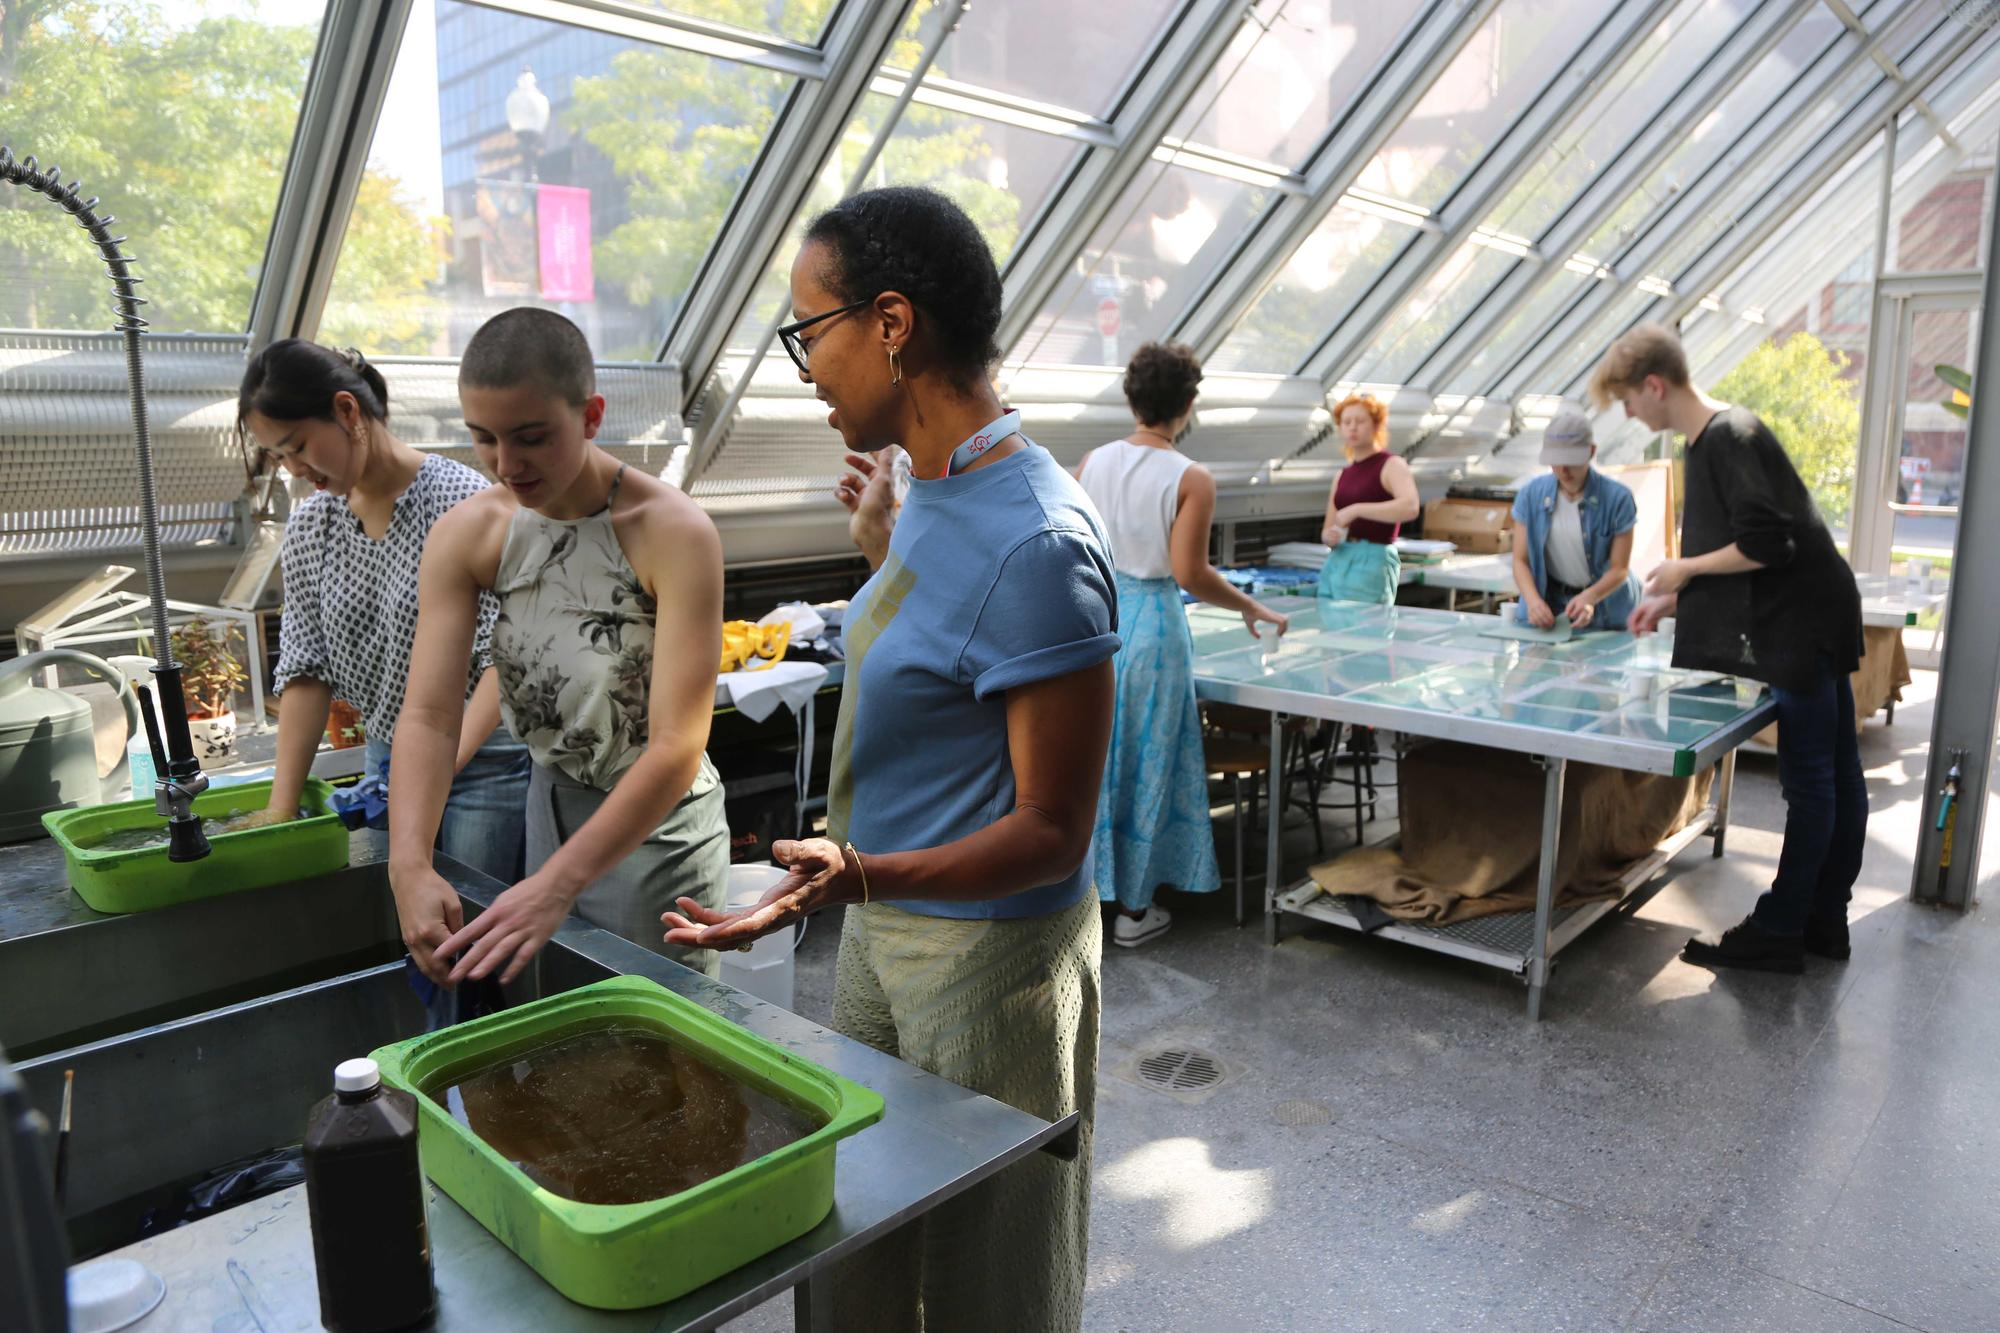 Sonya Clark and students from MassArt working on her cyanotype project in the Education Greenhouse, 2019